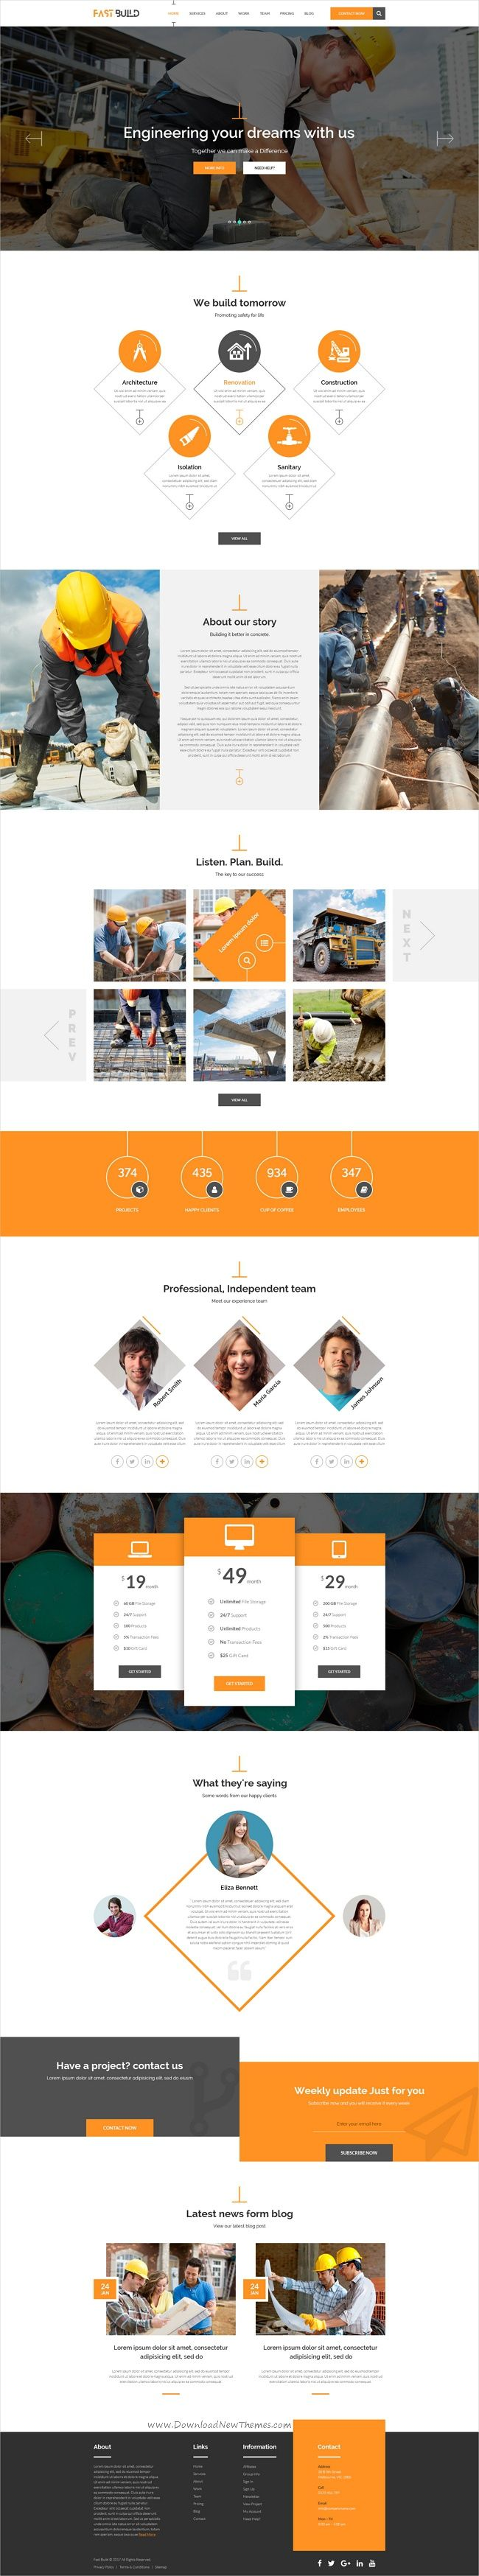 Fast Desk fice Food Charity and Industry Psd Templates